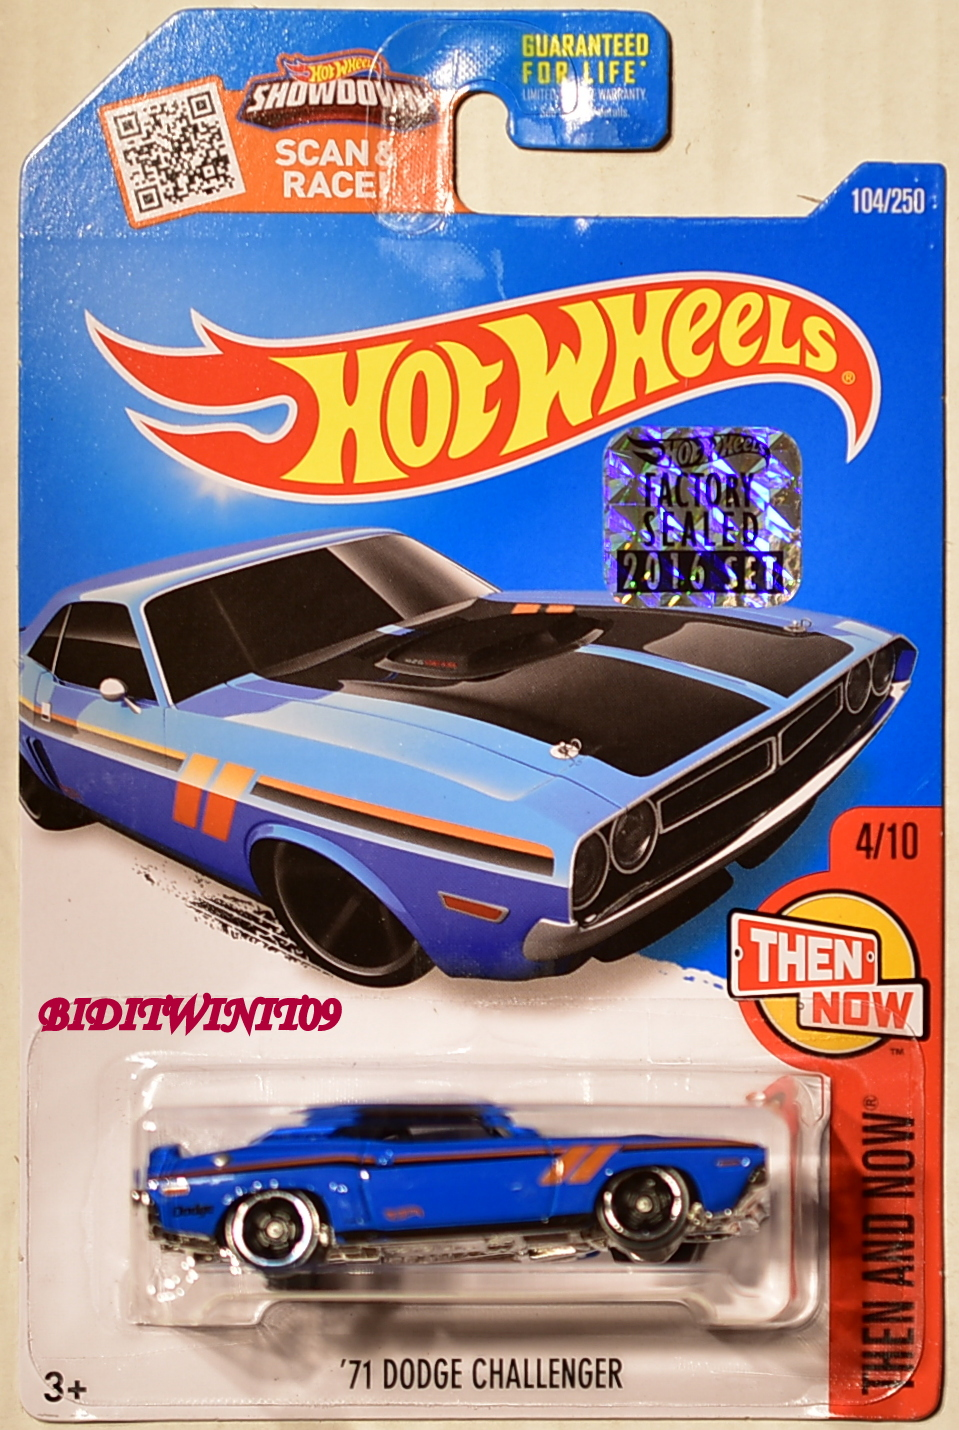 HOT WHEELS 2016 THEN AND NOW '71 DODGE CHALLENGER #4/10 BLUE FACTORY SEALED